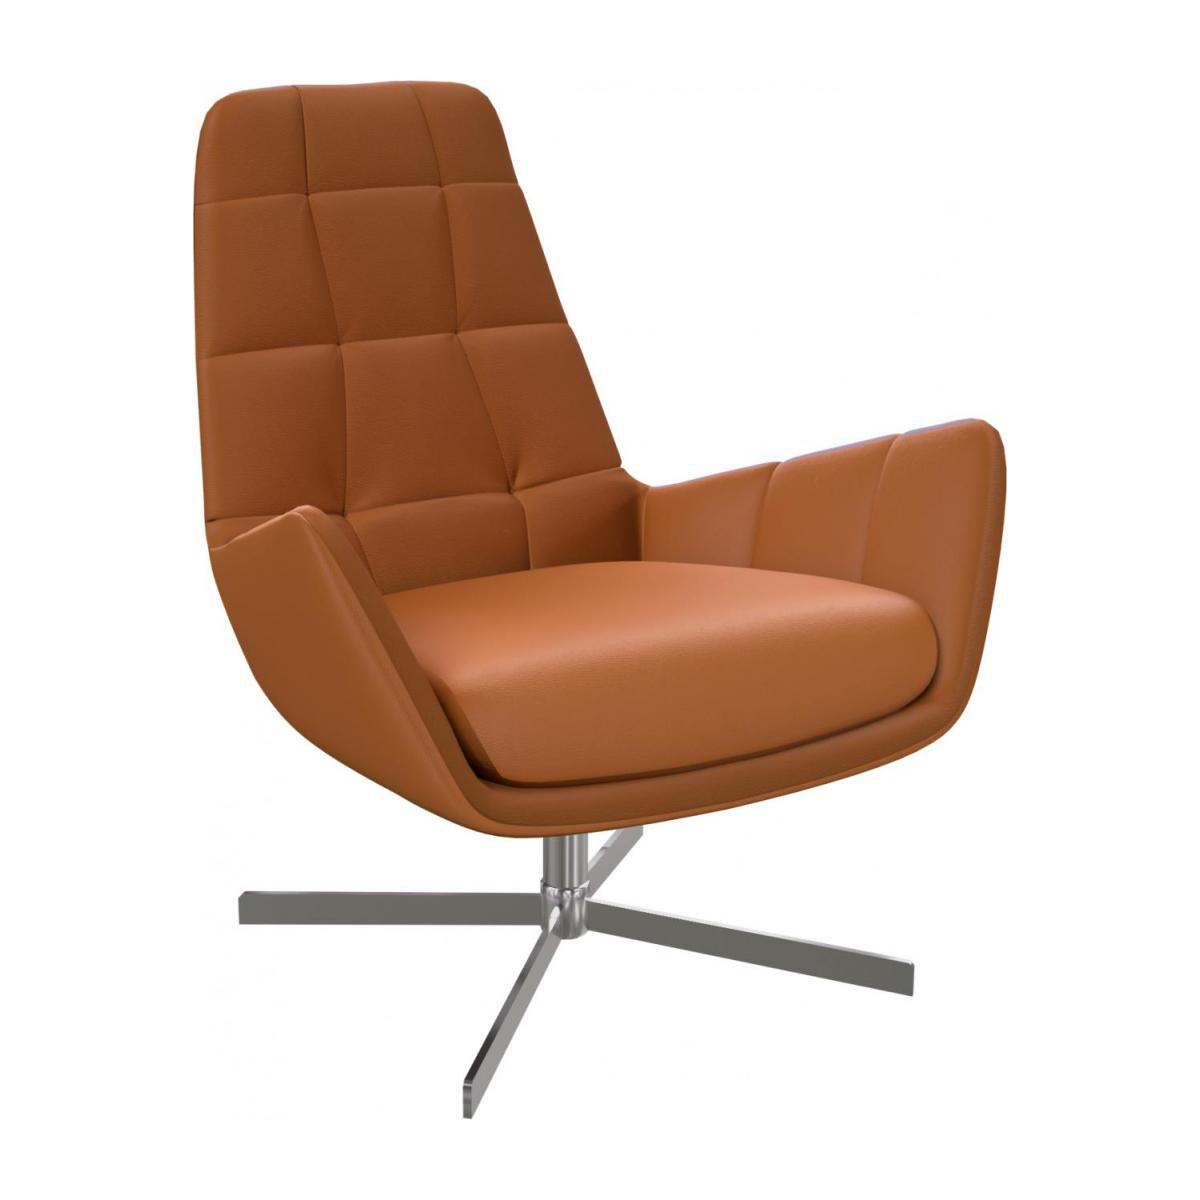 Armchair in Savoy semi-aniline leather, cognac with metal cross leg